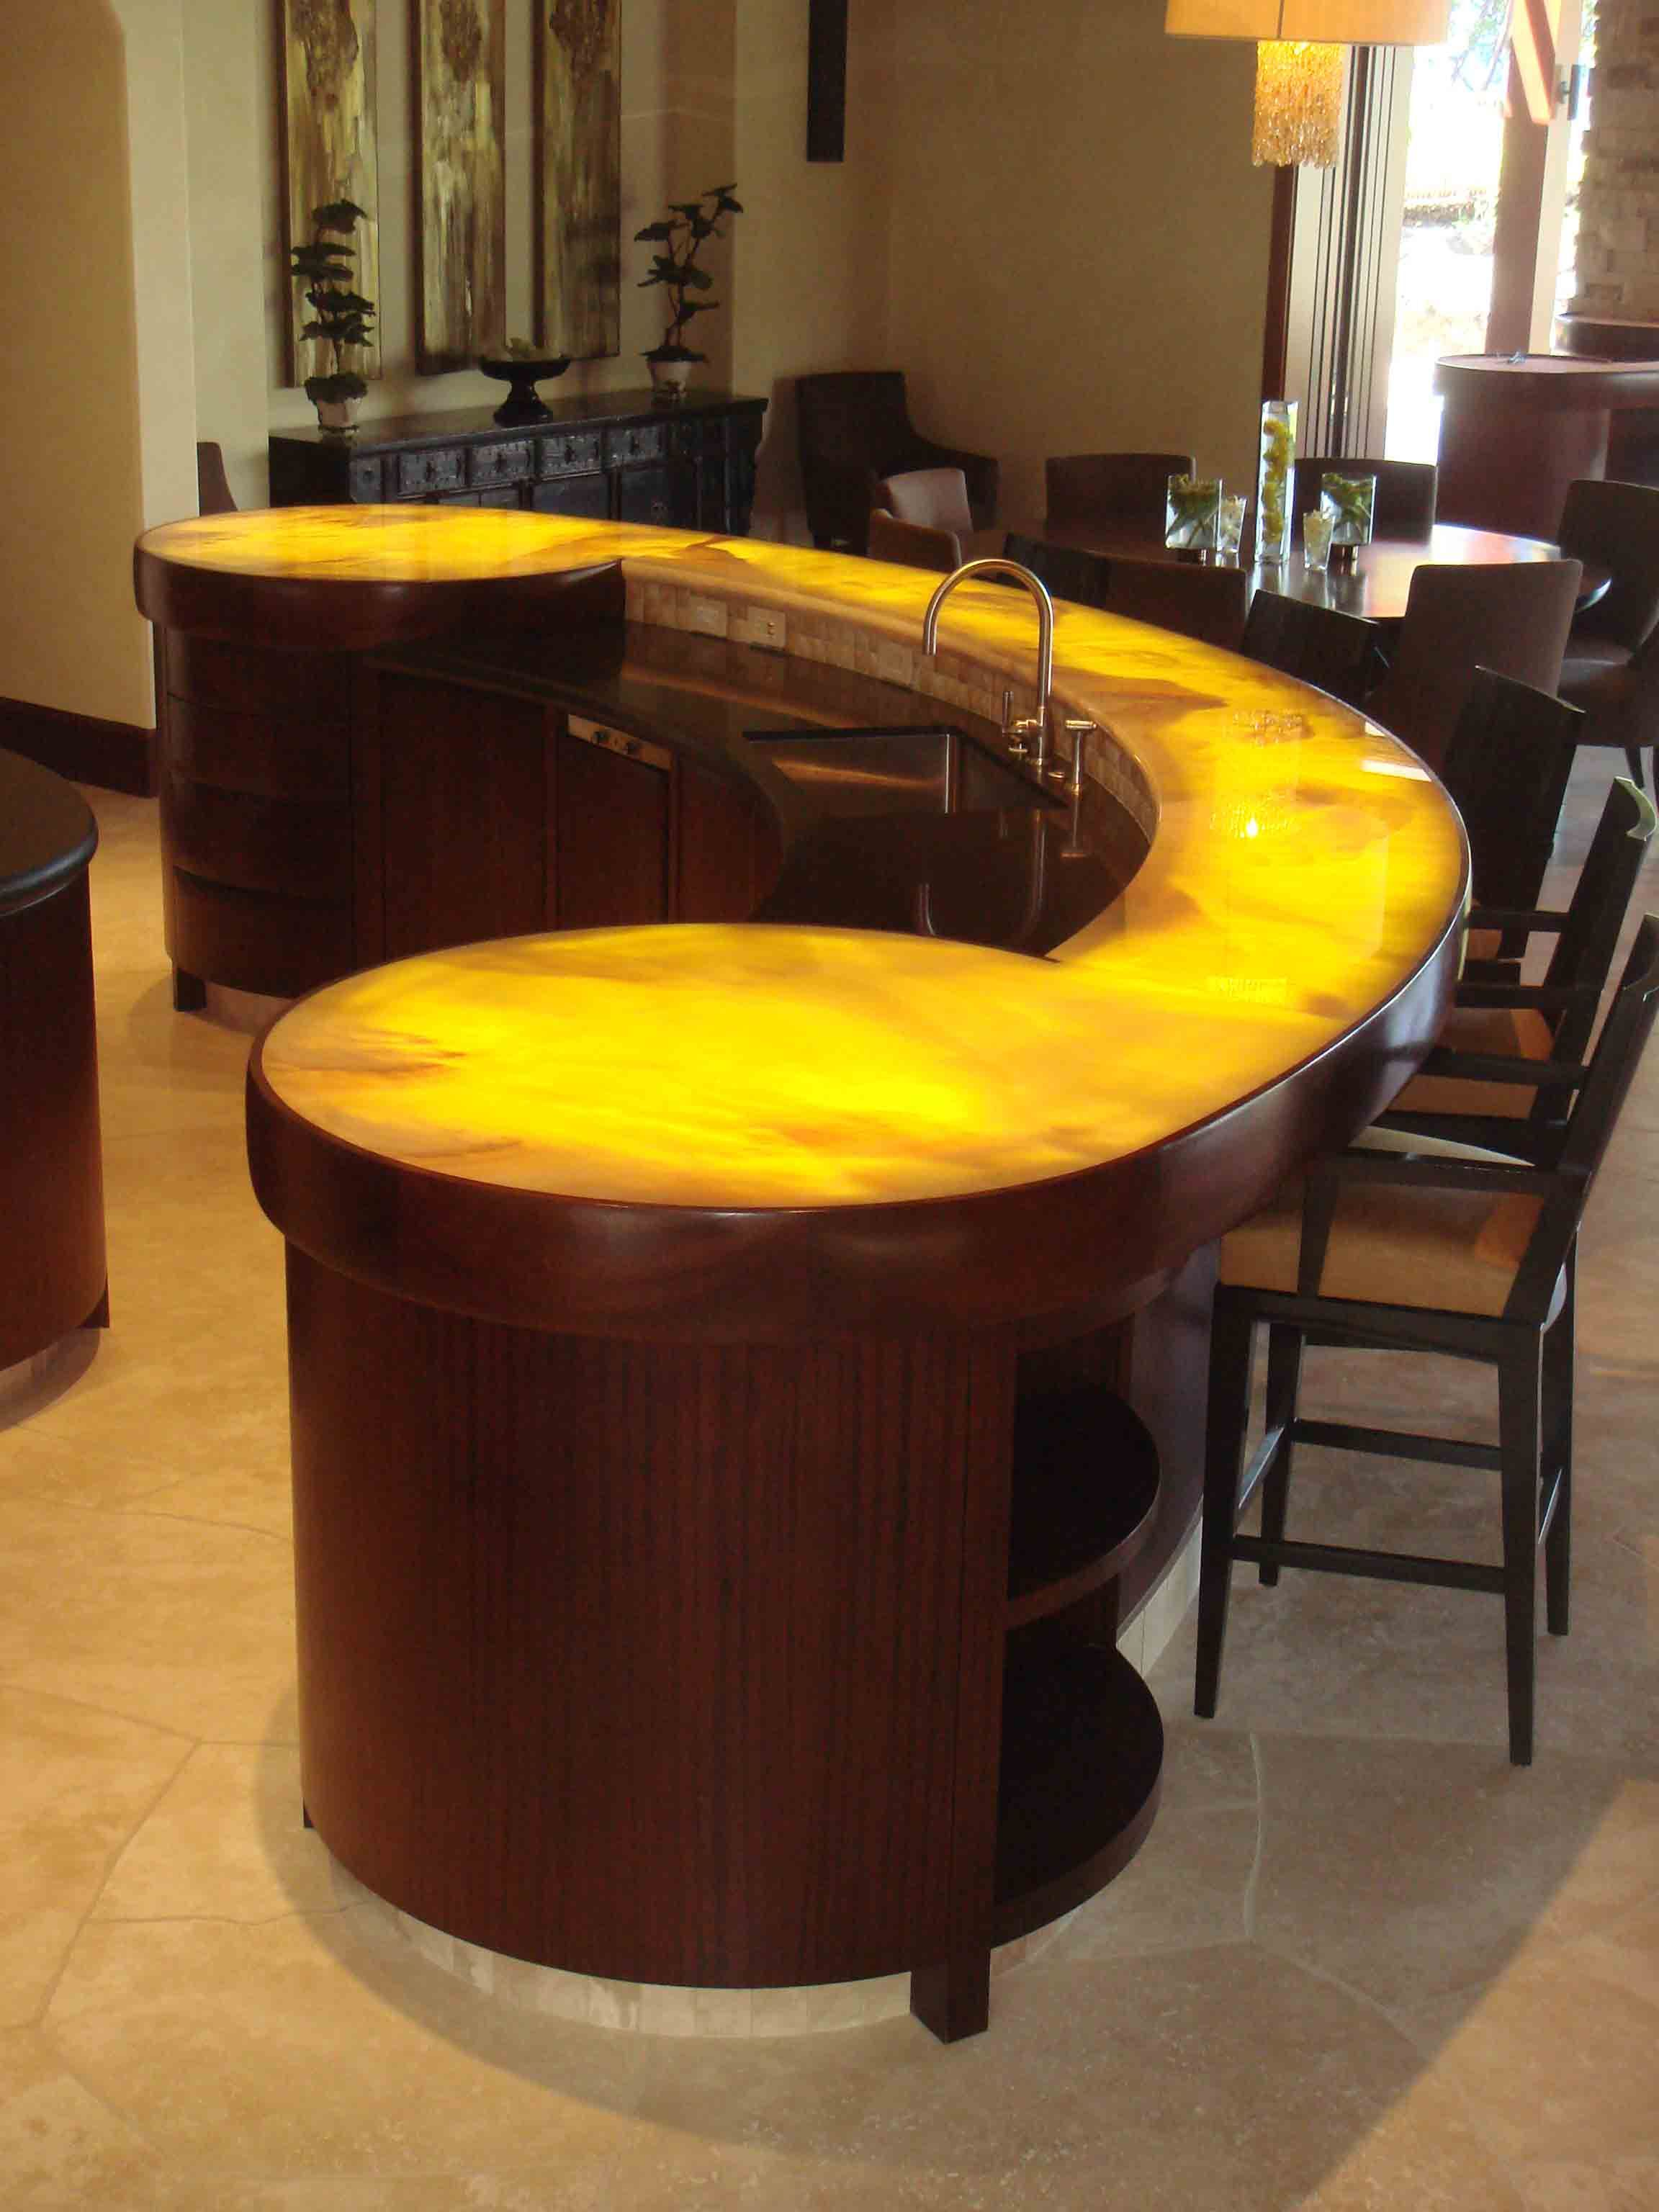 Fetching Modern Bar Counter Designs For Home Design With Dark Brown ...